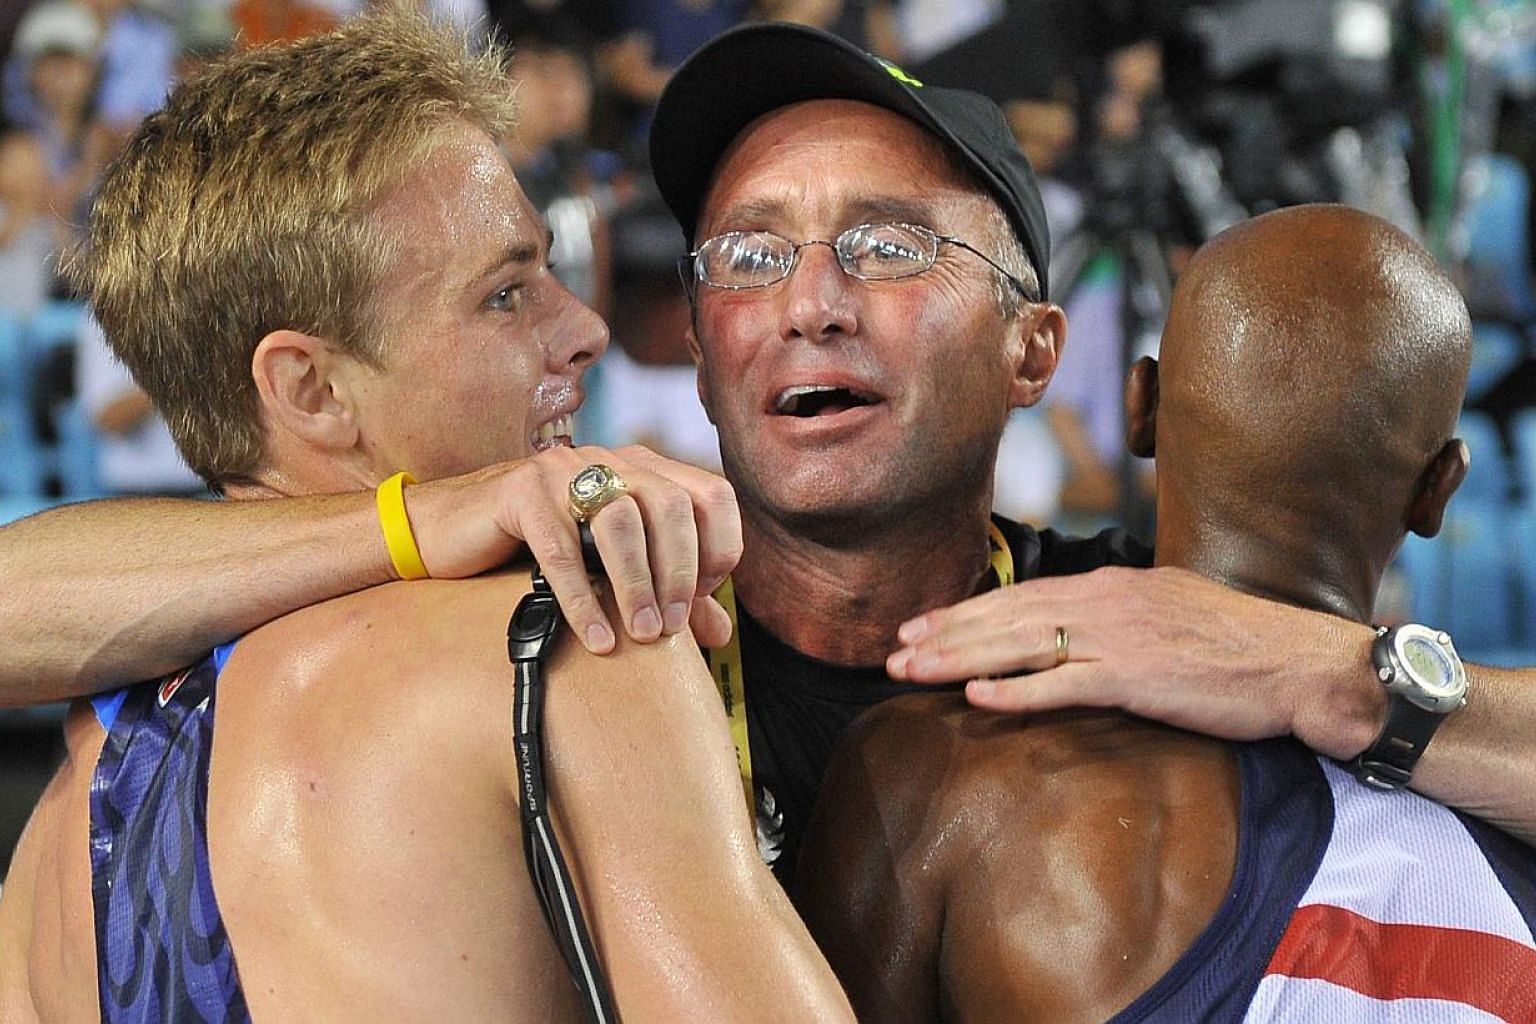 A photograph taken on Sept 4, 2011, shows US coach Alberto Salazar (centre) hugging US athlete Bernard Lagat (right) and US athlete Galen Rupp following the men's 5,000 metres final at the International Association of Athletics Federations (IAAF) Wor